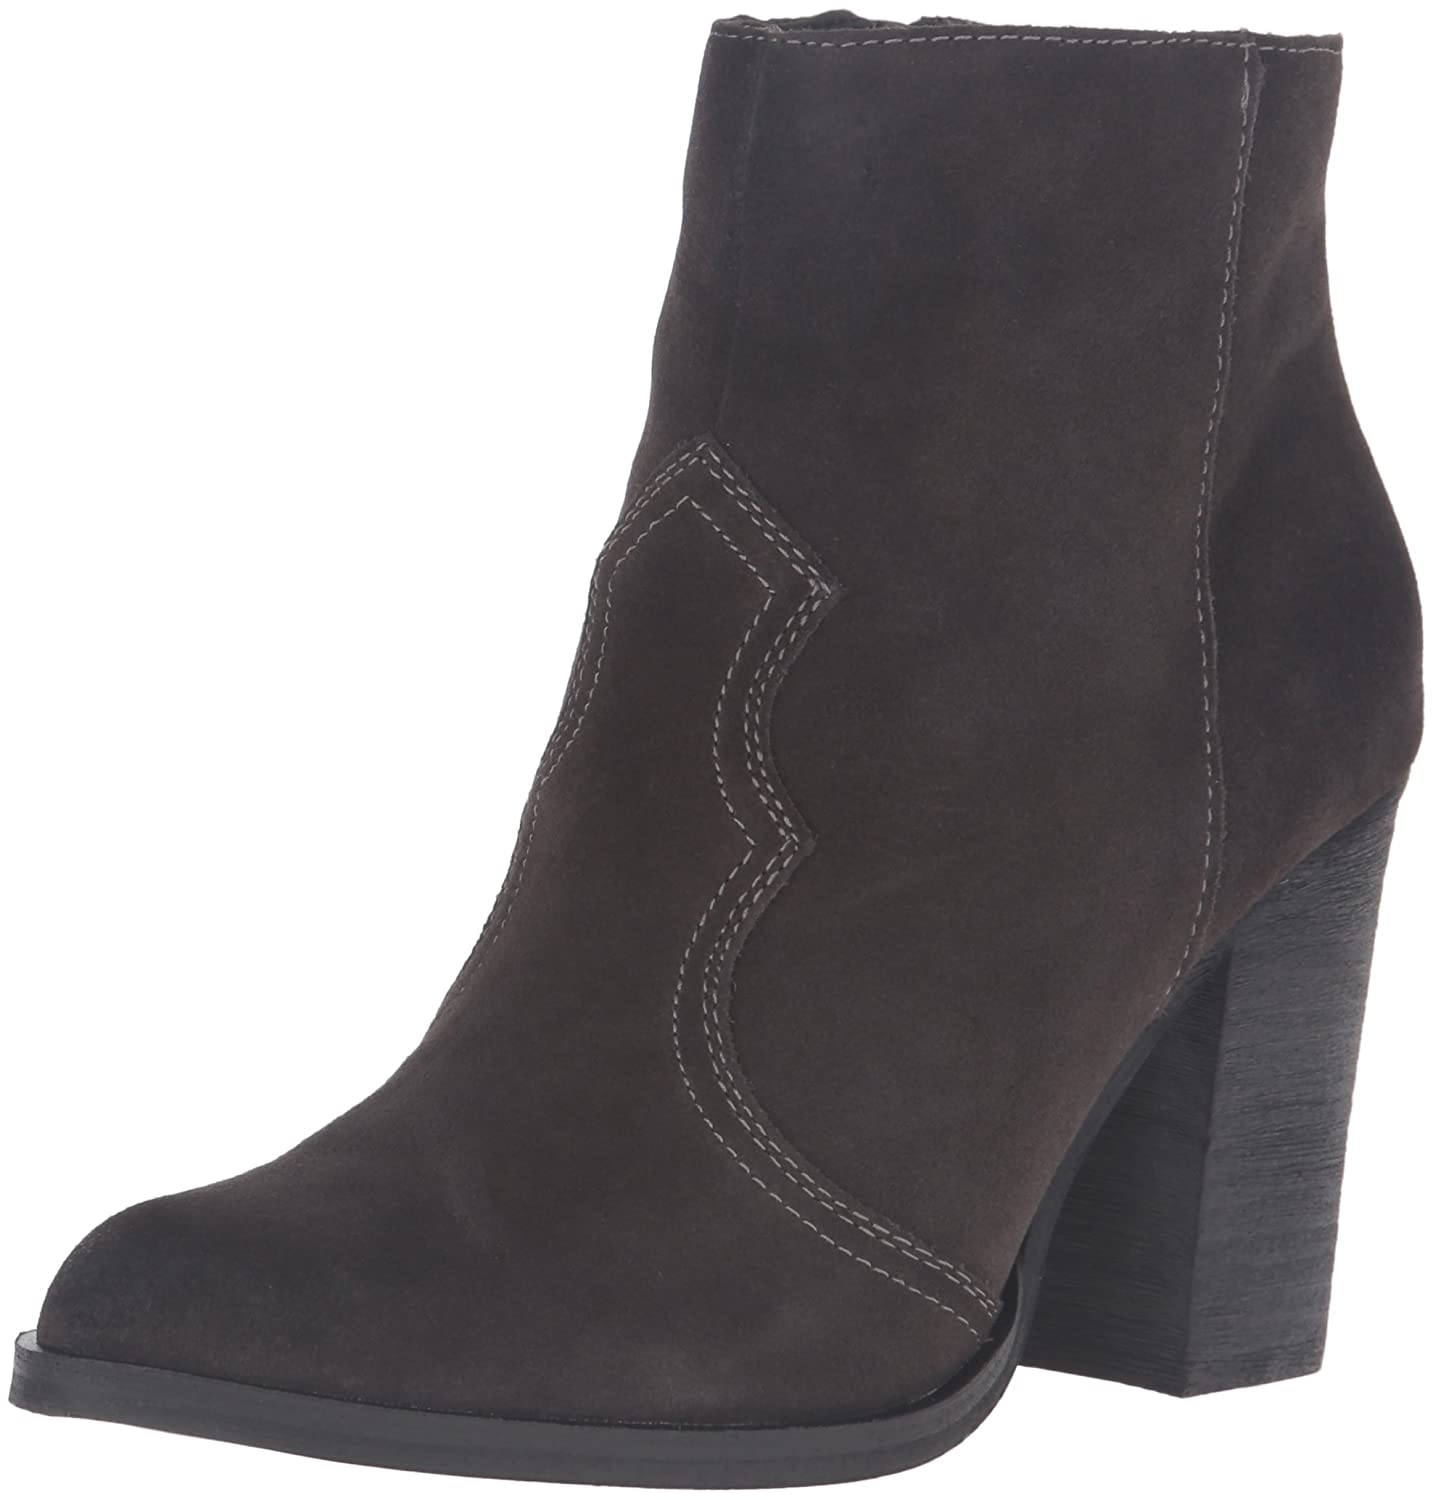 Dolce Vita Women's Caillin Ankle Bootie B01EMC8JAY 9 B(M) US|Anthracite